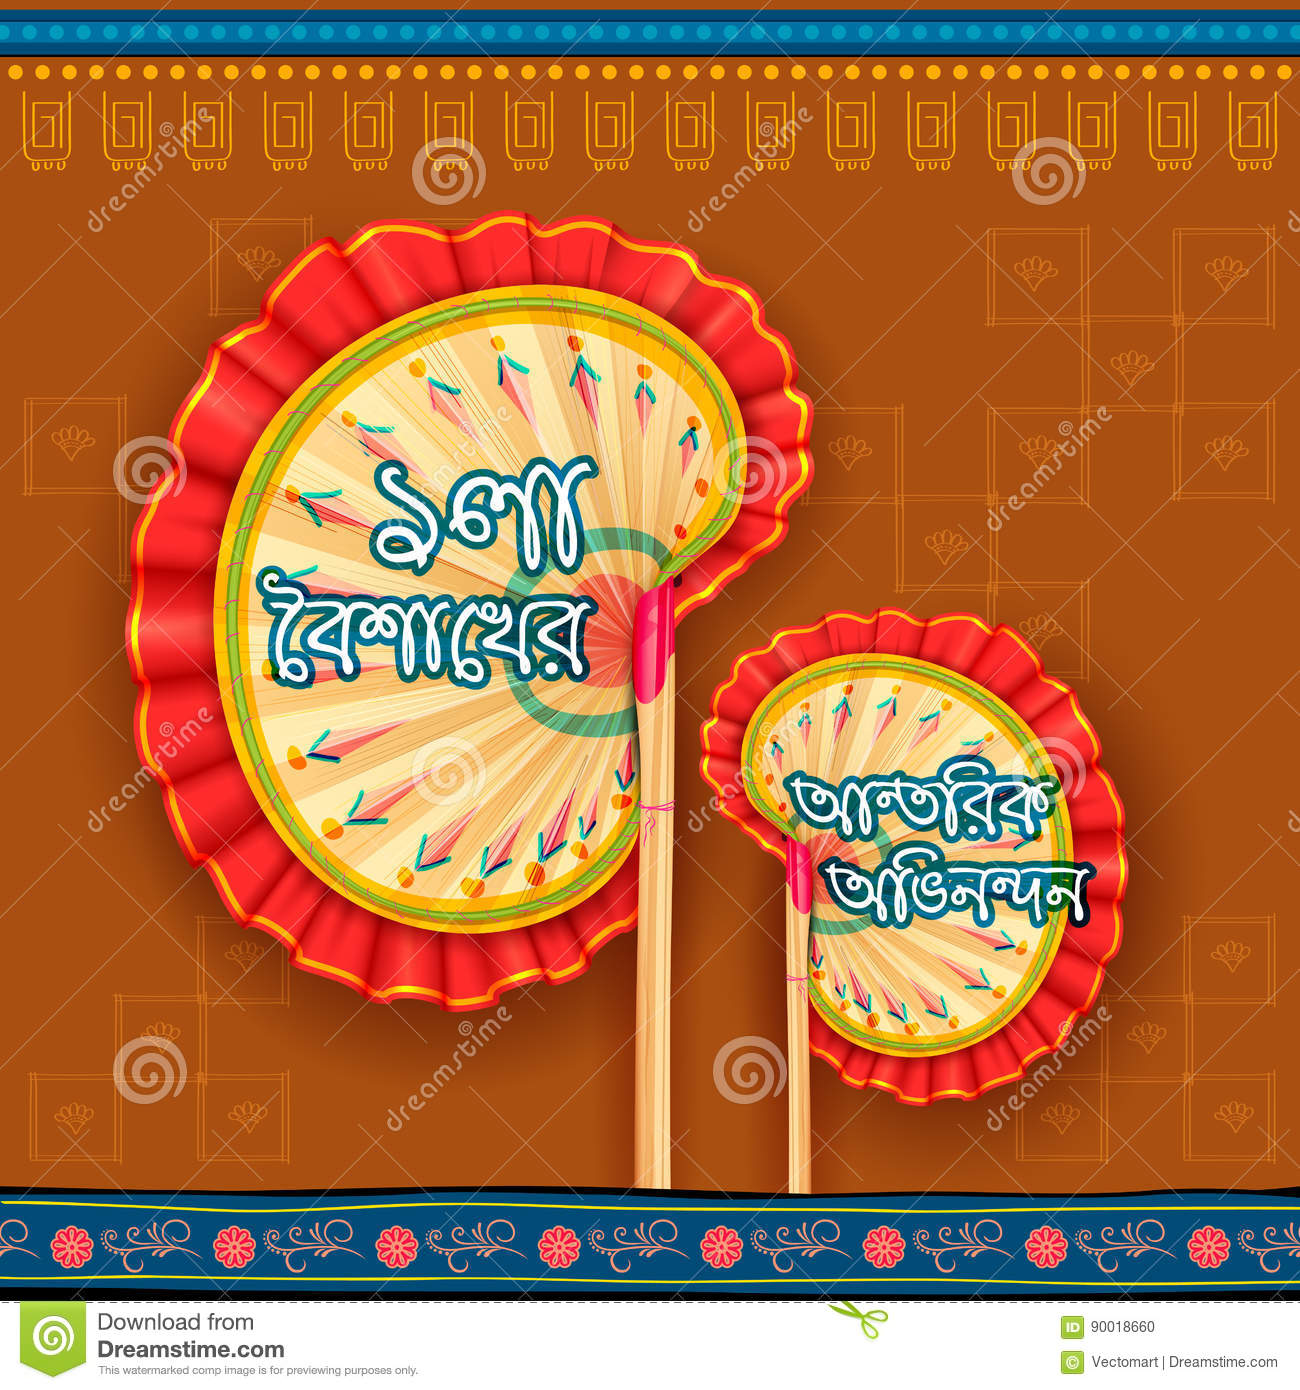 Greeting background with bengali text poila boisakher antarik greeting background with bengali text poila boisakher antarik abhinandan meaning heartiest wishing for happy new year m4hsunfo